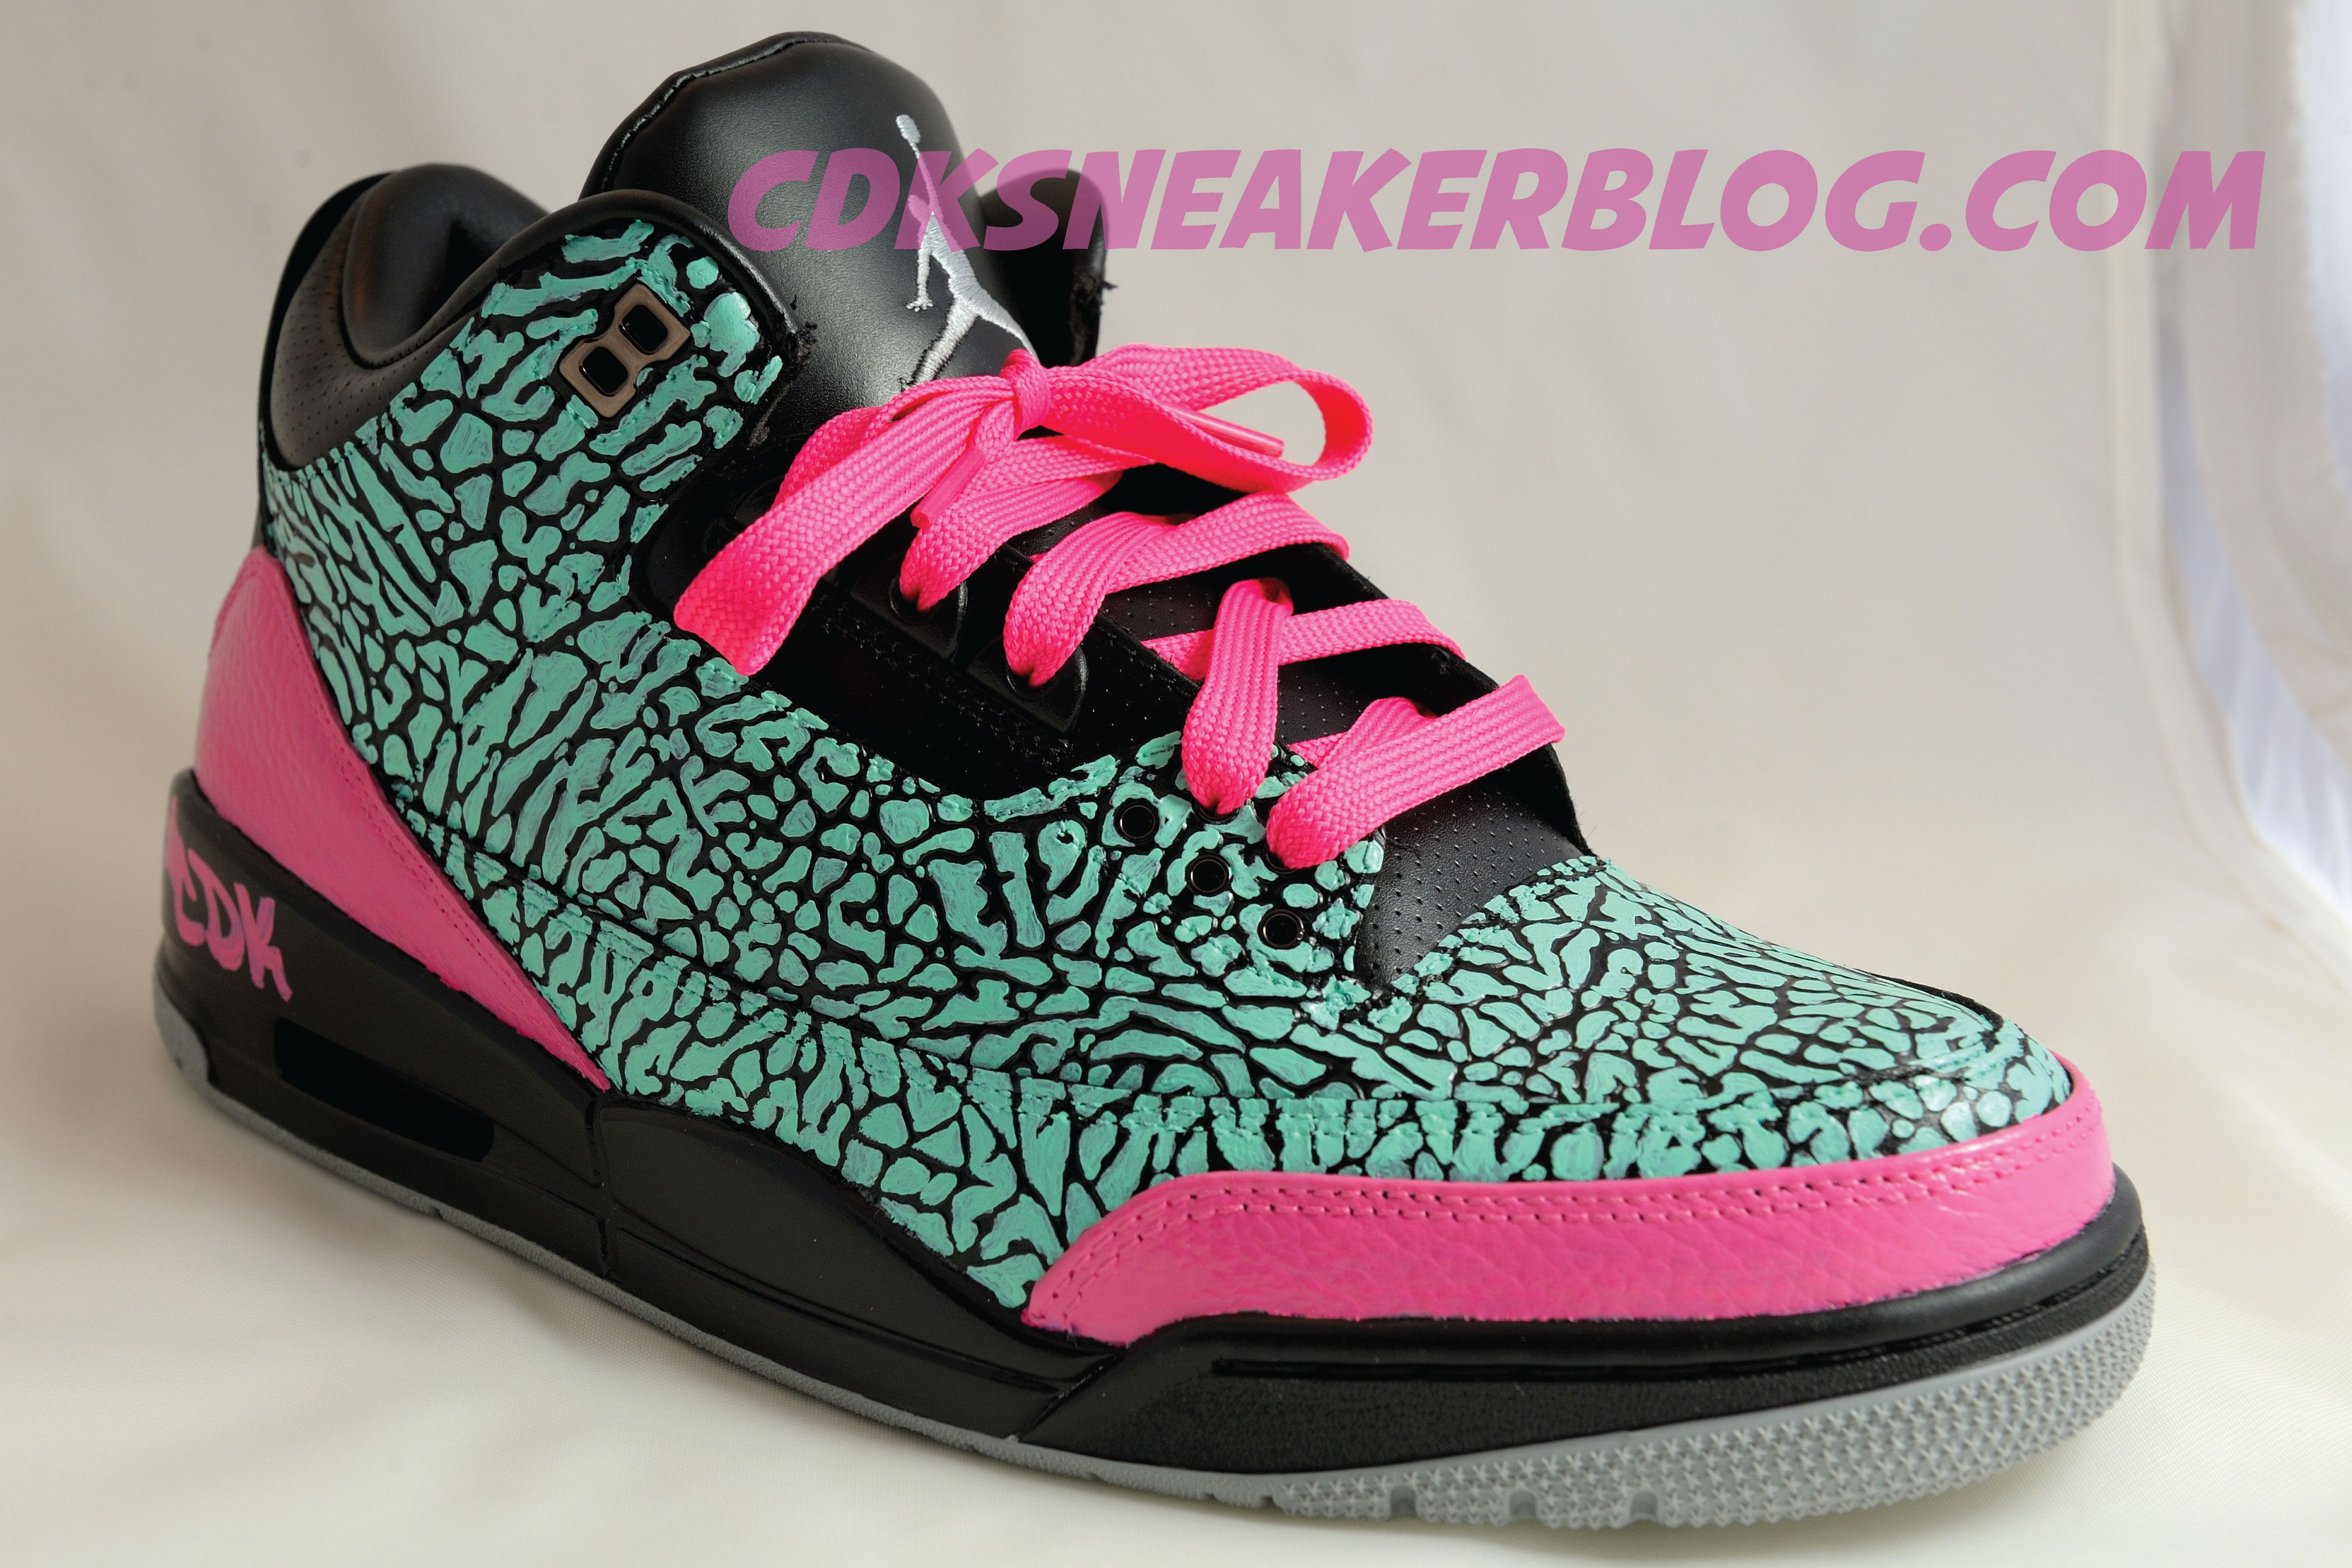 buy online 15056 4d3c0 ... inexpensive designed in december 2011 i painted this pair of air jordan  iii black flips inspired